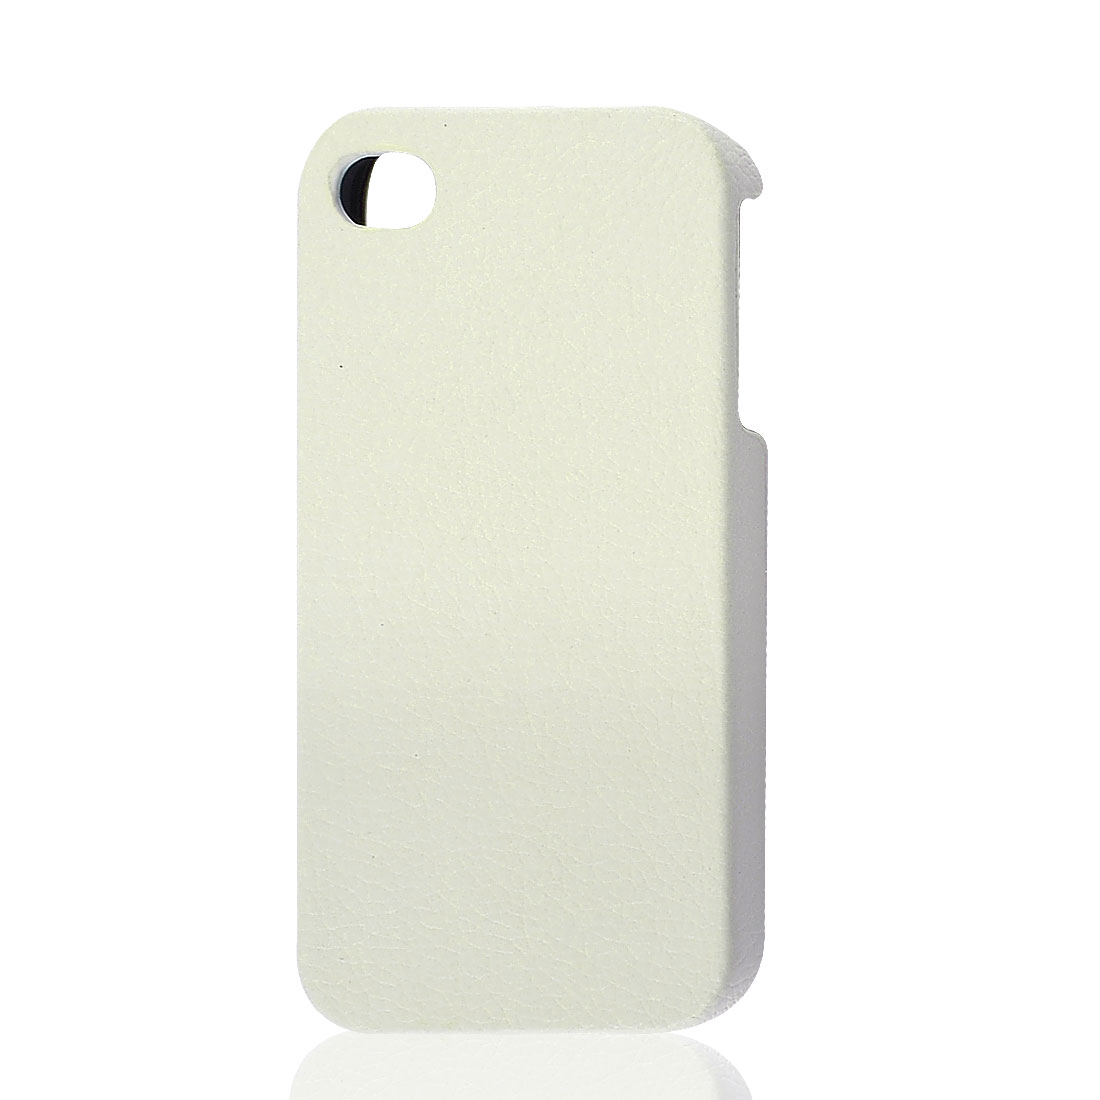 White Faux Leather Coated Back Cover Shell Case Protector for iPhone4 4G 4GS 4S